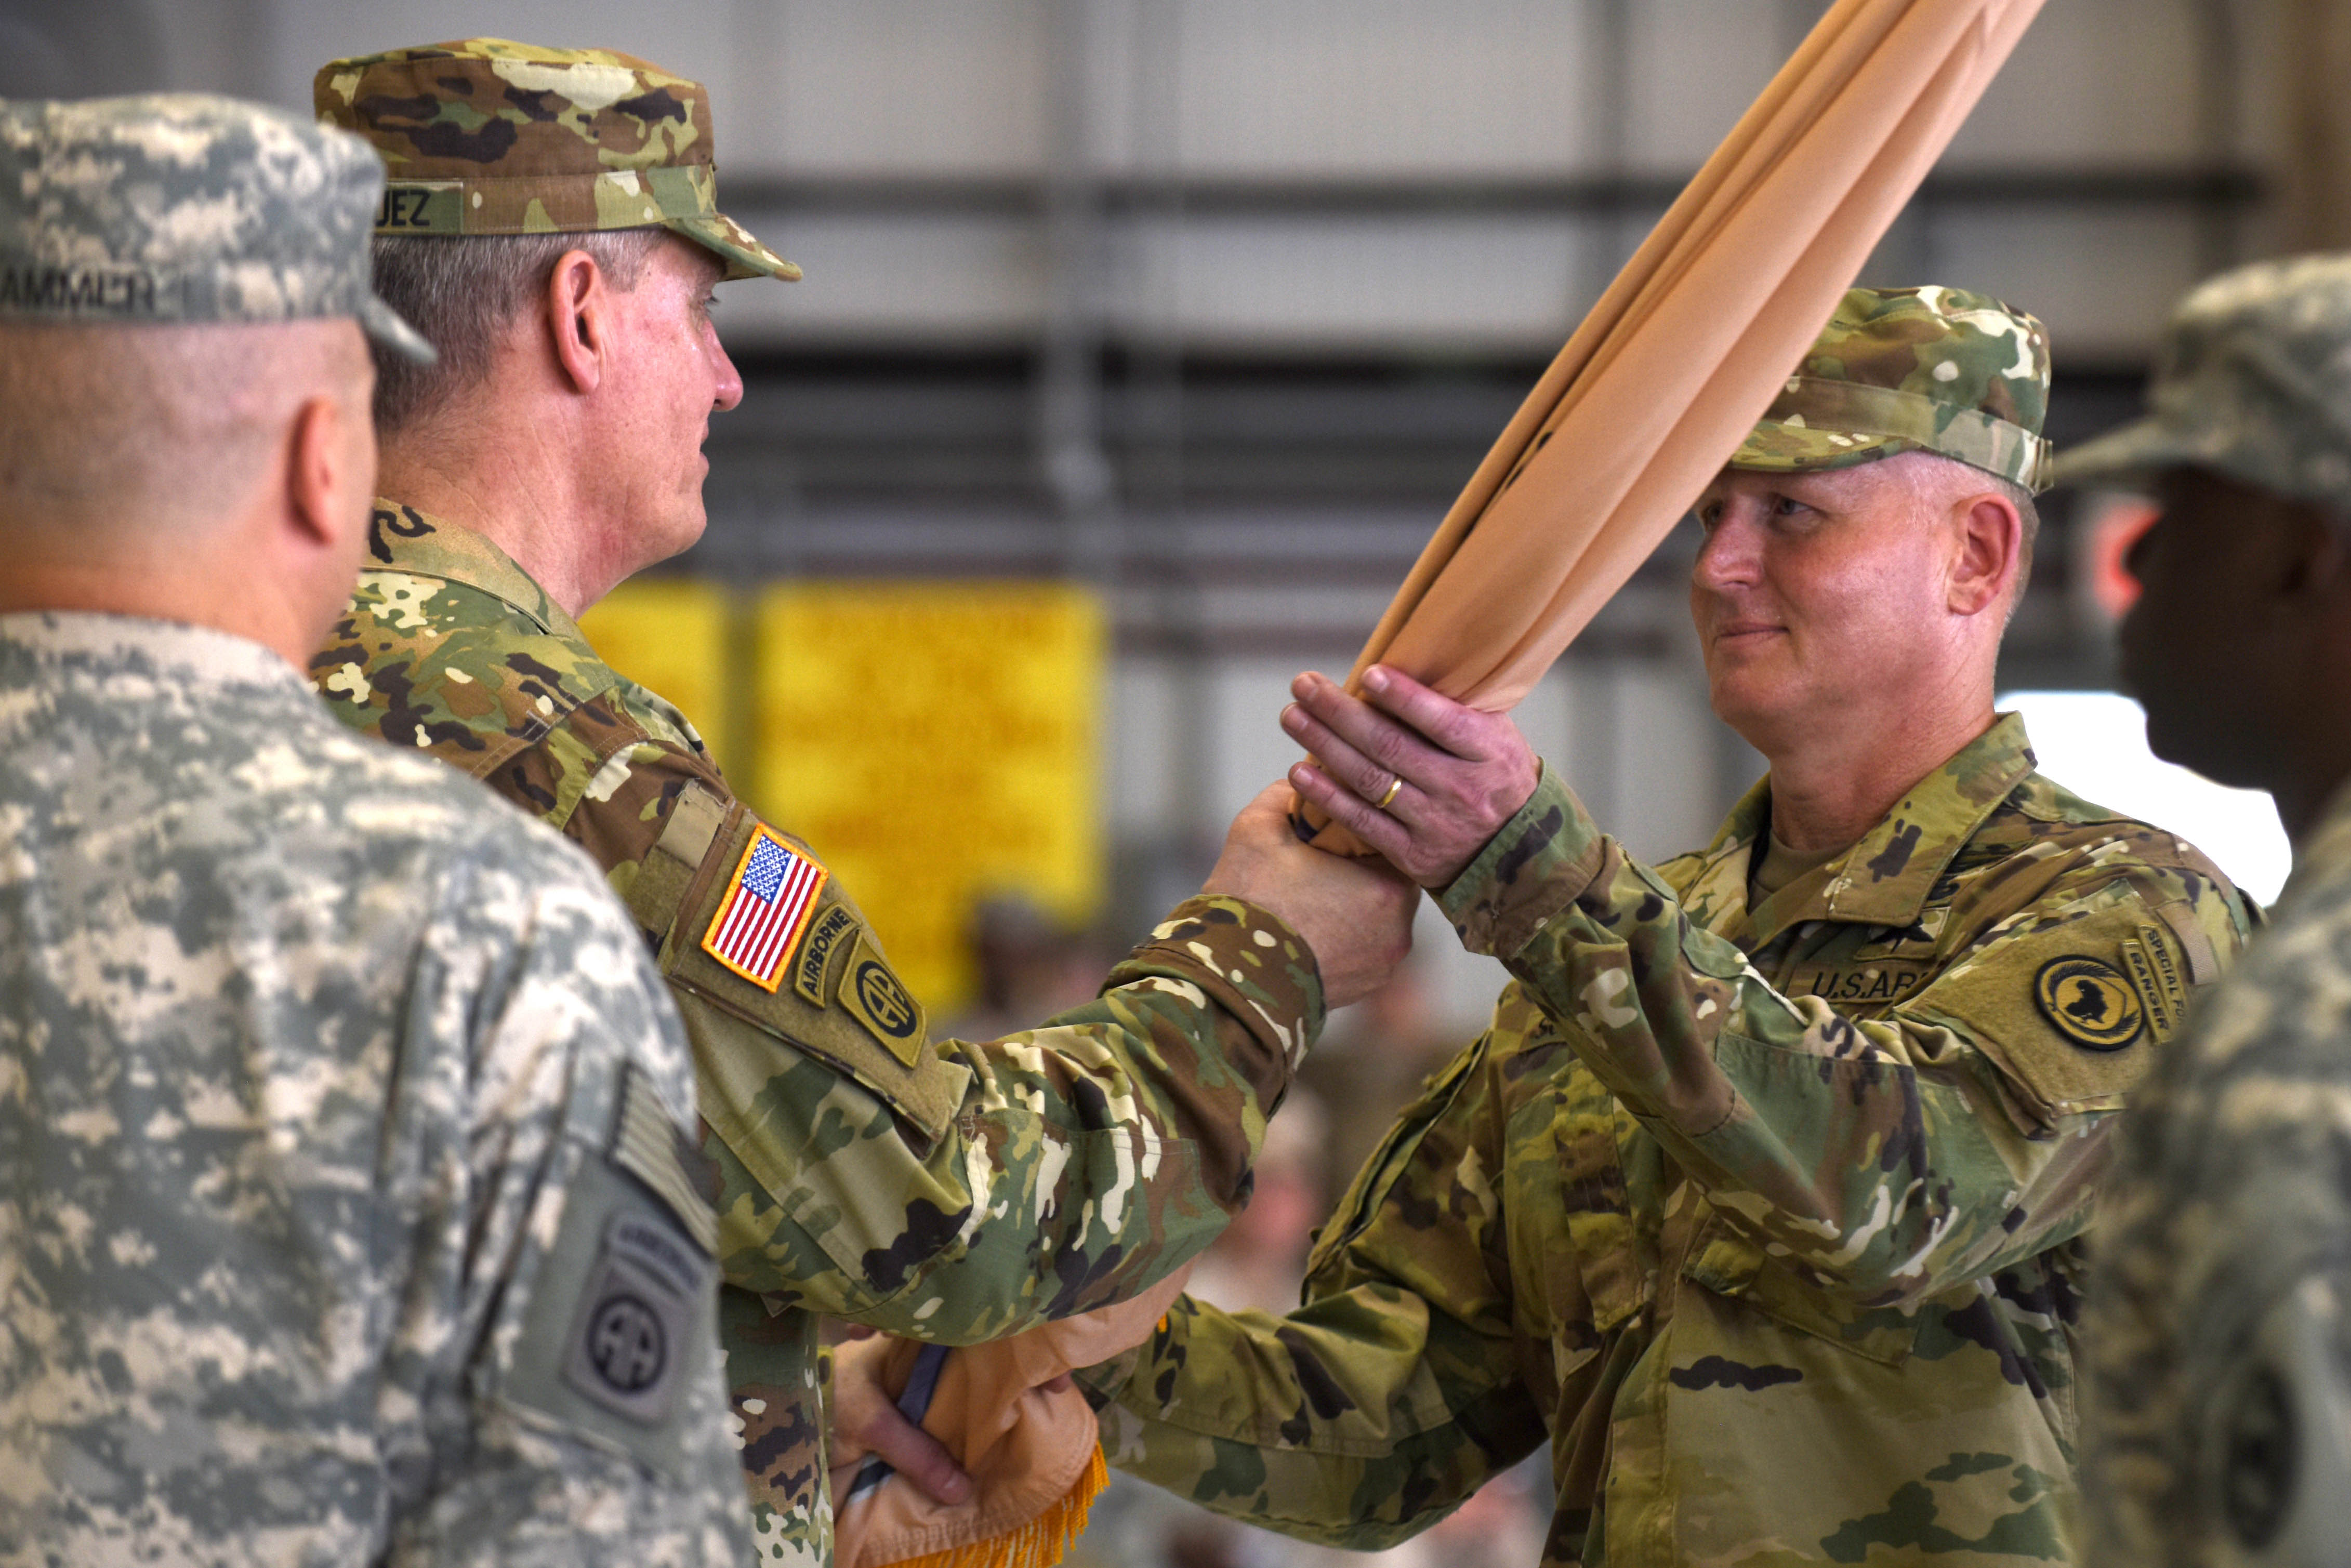 U.S. Army Gen. David M. Rodriguez, U.S. Africa Command commanding general, passes the Combined Joint Task Force-Horn of Africa flag to Brig. Gen. Kurt Sonntag during a change of command ceremony April 13, 2016, at Camp Lemonnier, Djibouti. The passing of the flag signified the change of command from Maj. Gen. Mark Stammer to Sonntag, as the CJTF-HOA commanding general. (U.S. Air Force photo by Staff Sgt. Kate Thornton)